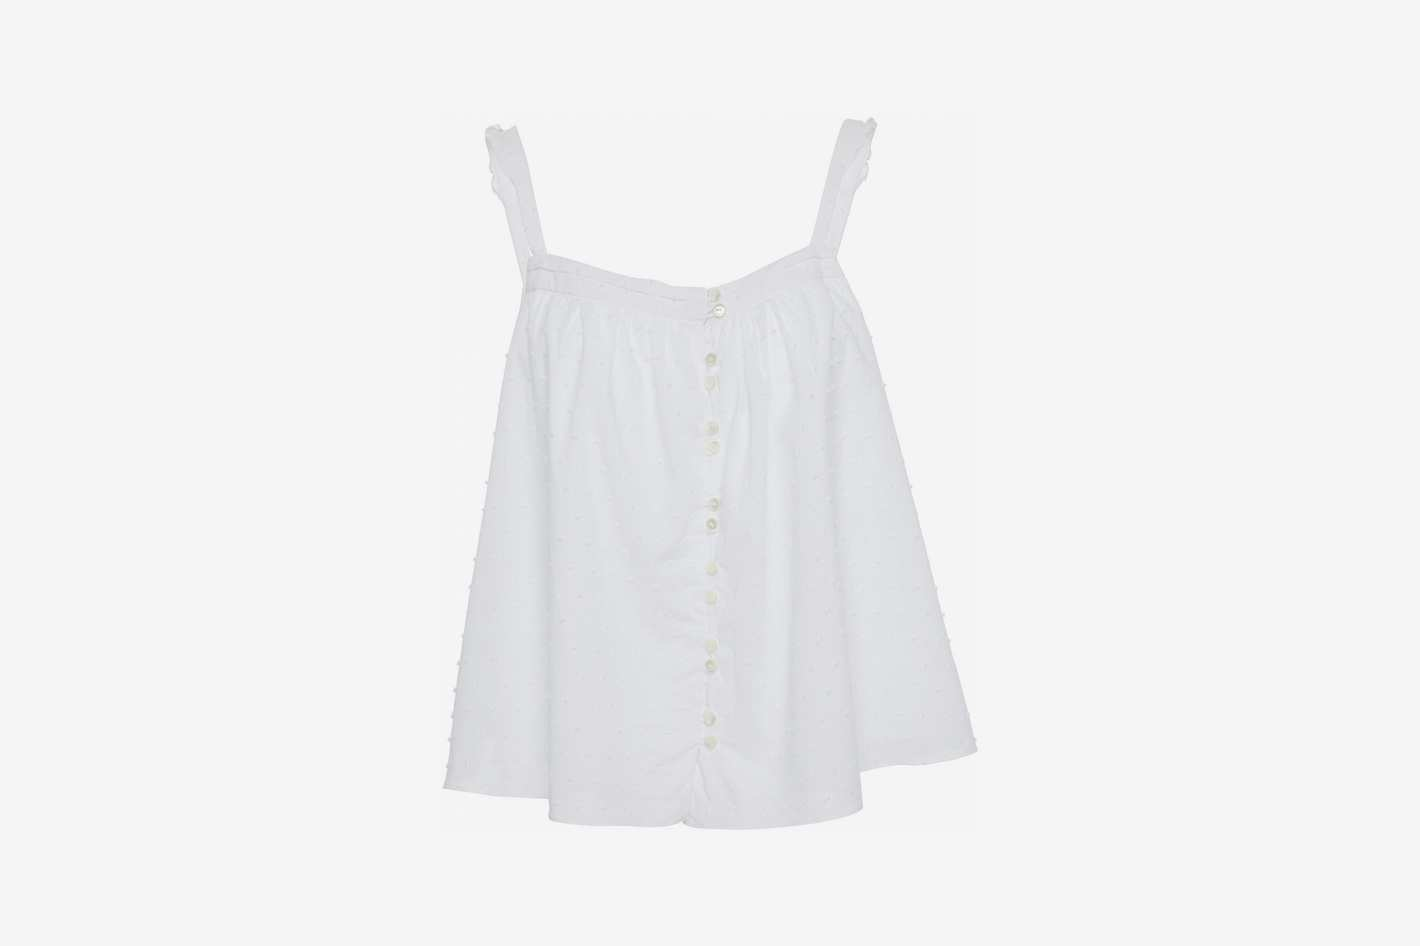 Loup Charmant Clovelly Cotton Tank Top